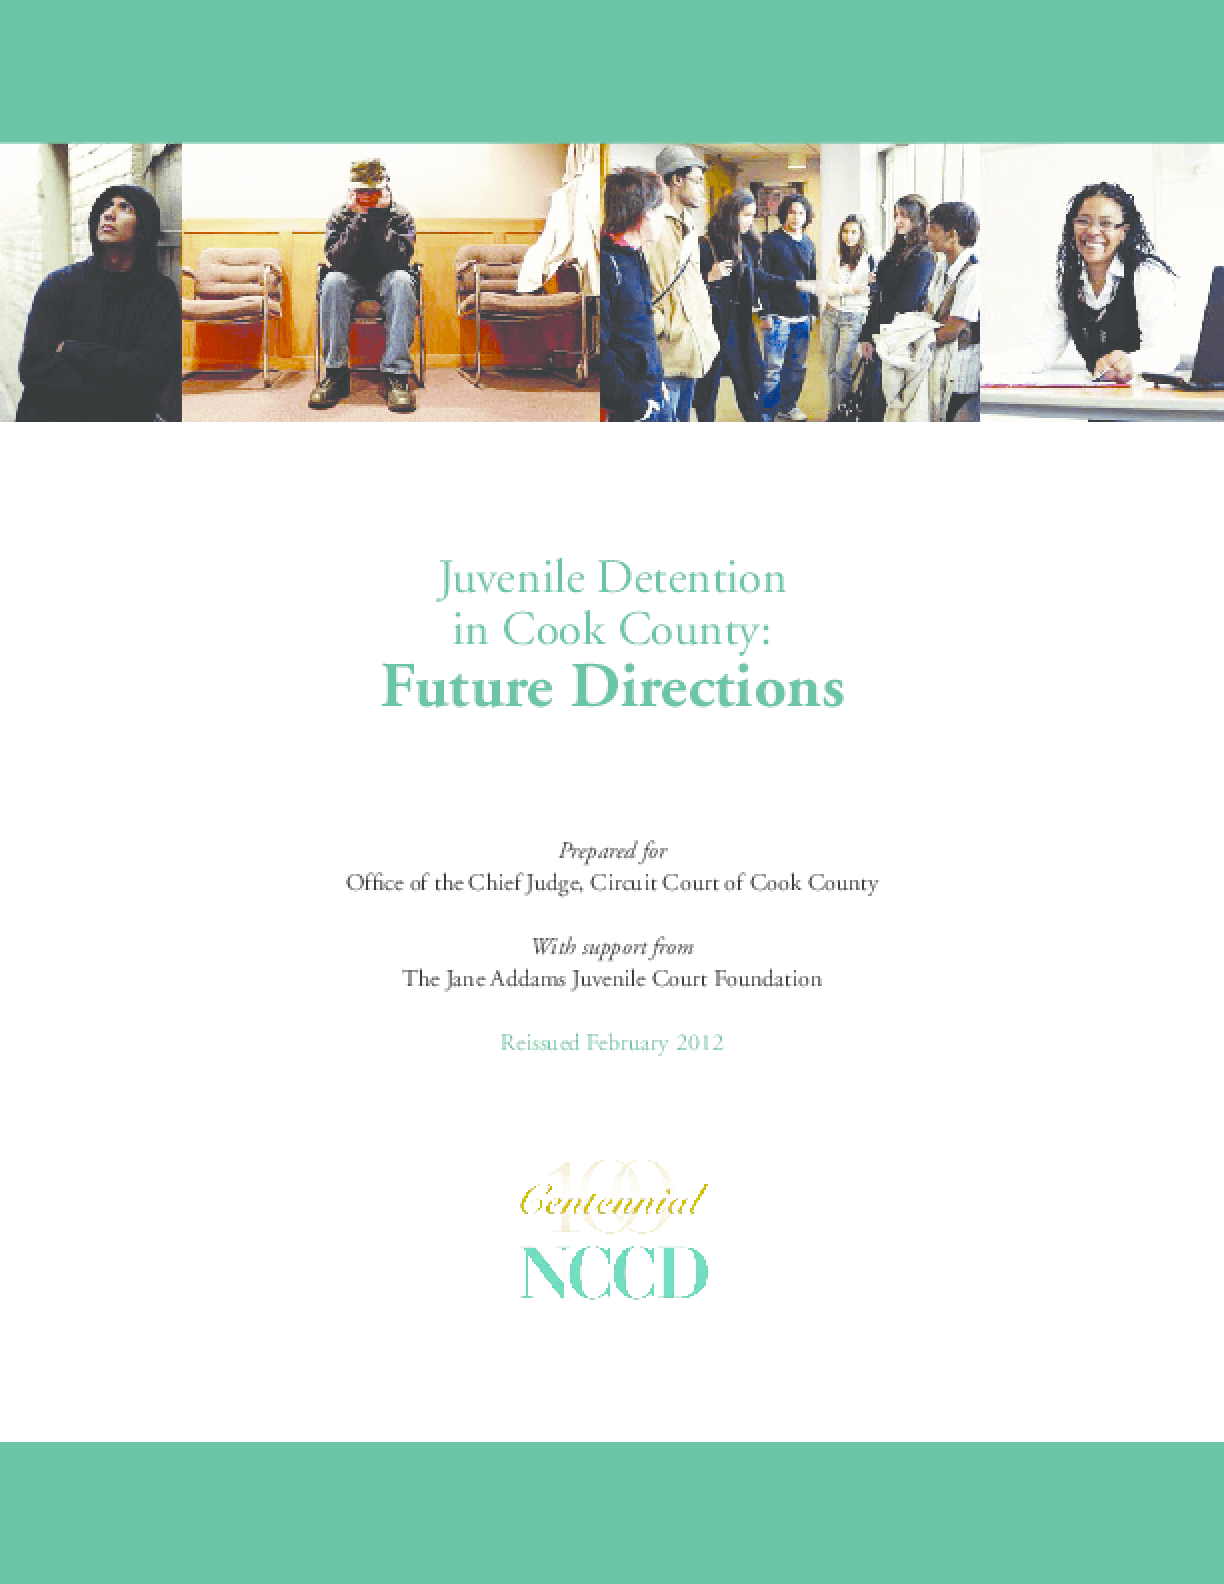 Juvenile Detention in Cook County: Future Directions